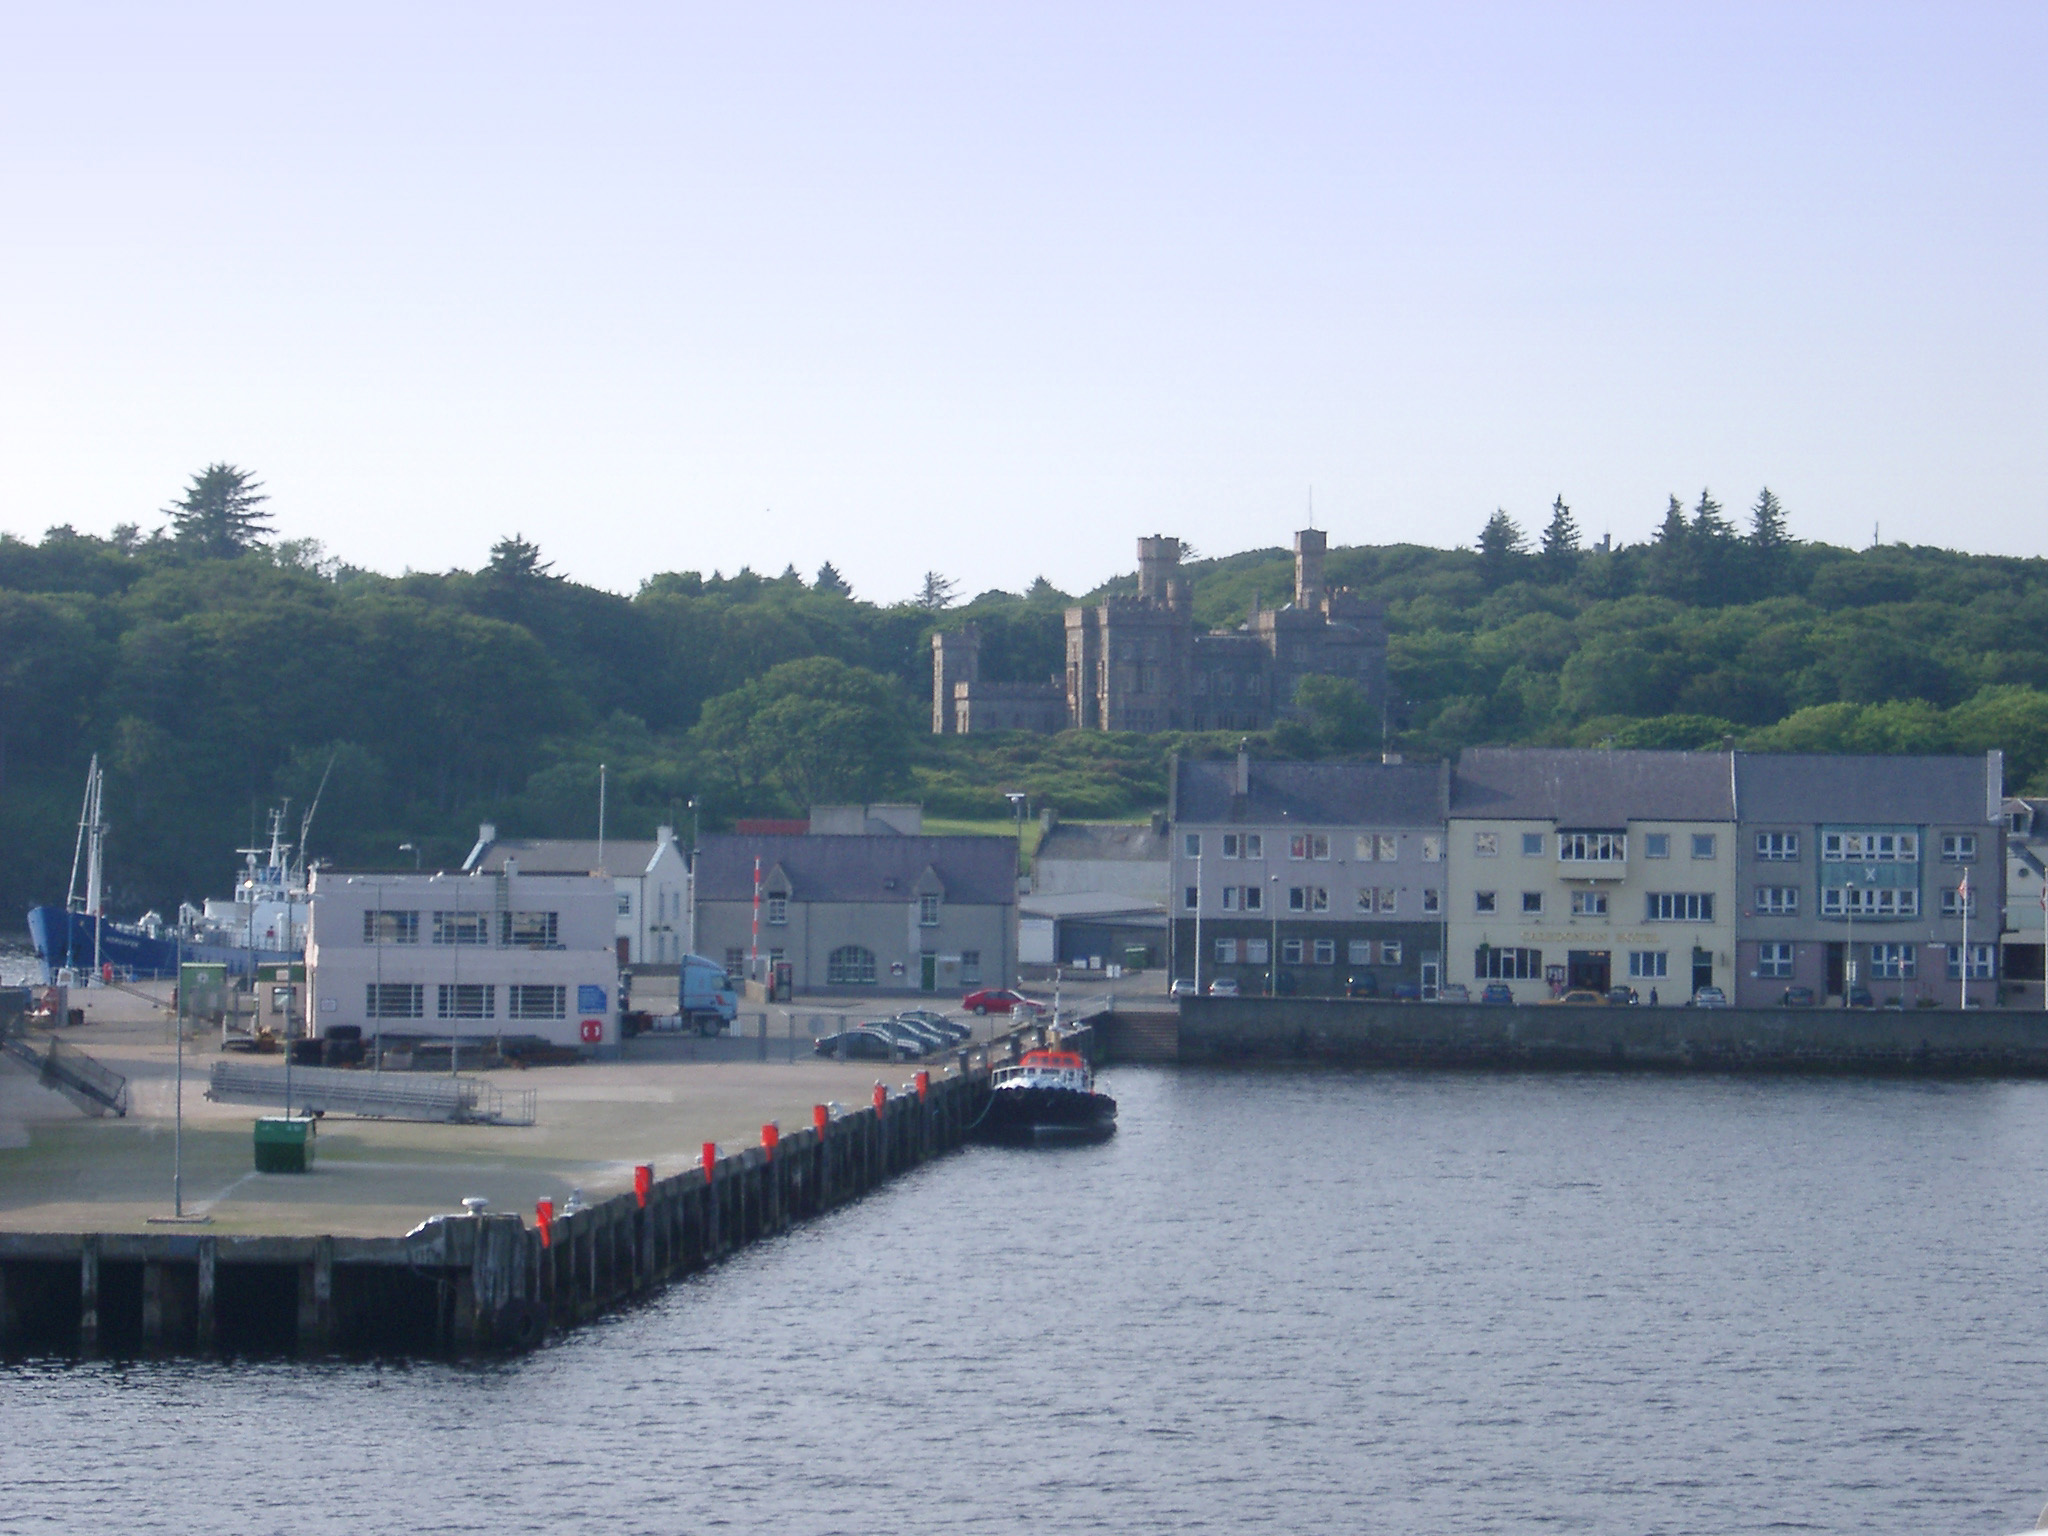 Coastal Village of Stornoway with Historical Lews Castle in Background, Isle of Lewis, Scotland